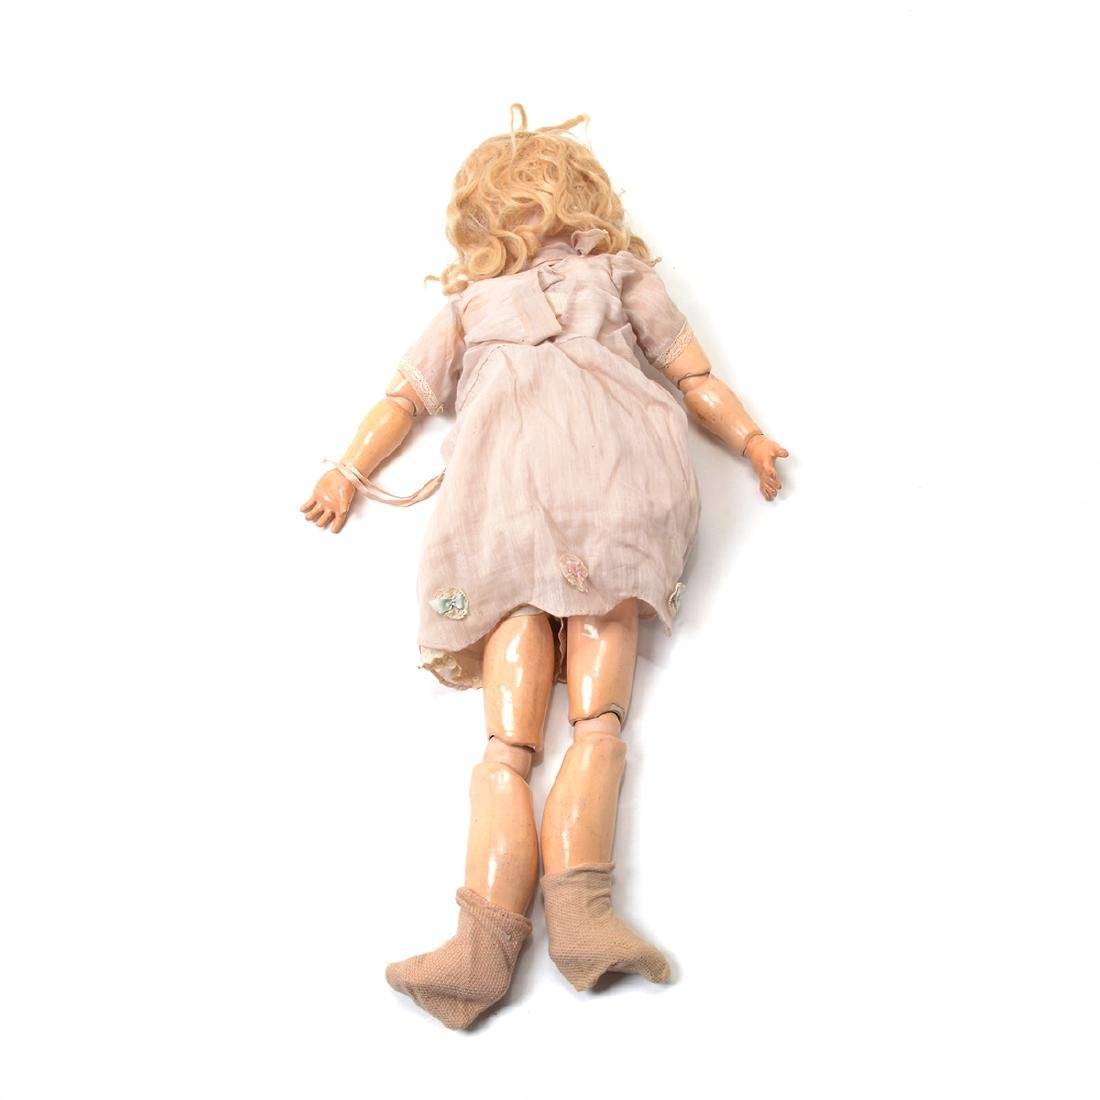 Bisque Head Doll with Doll Trunk - 7